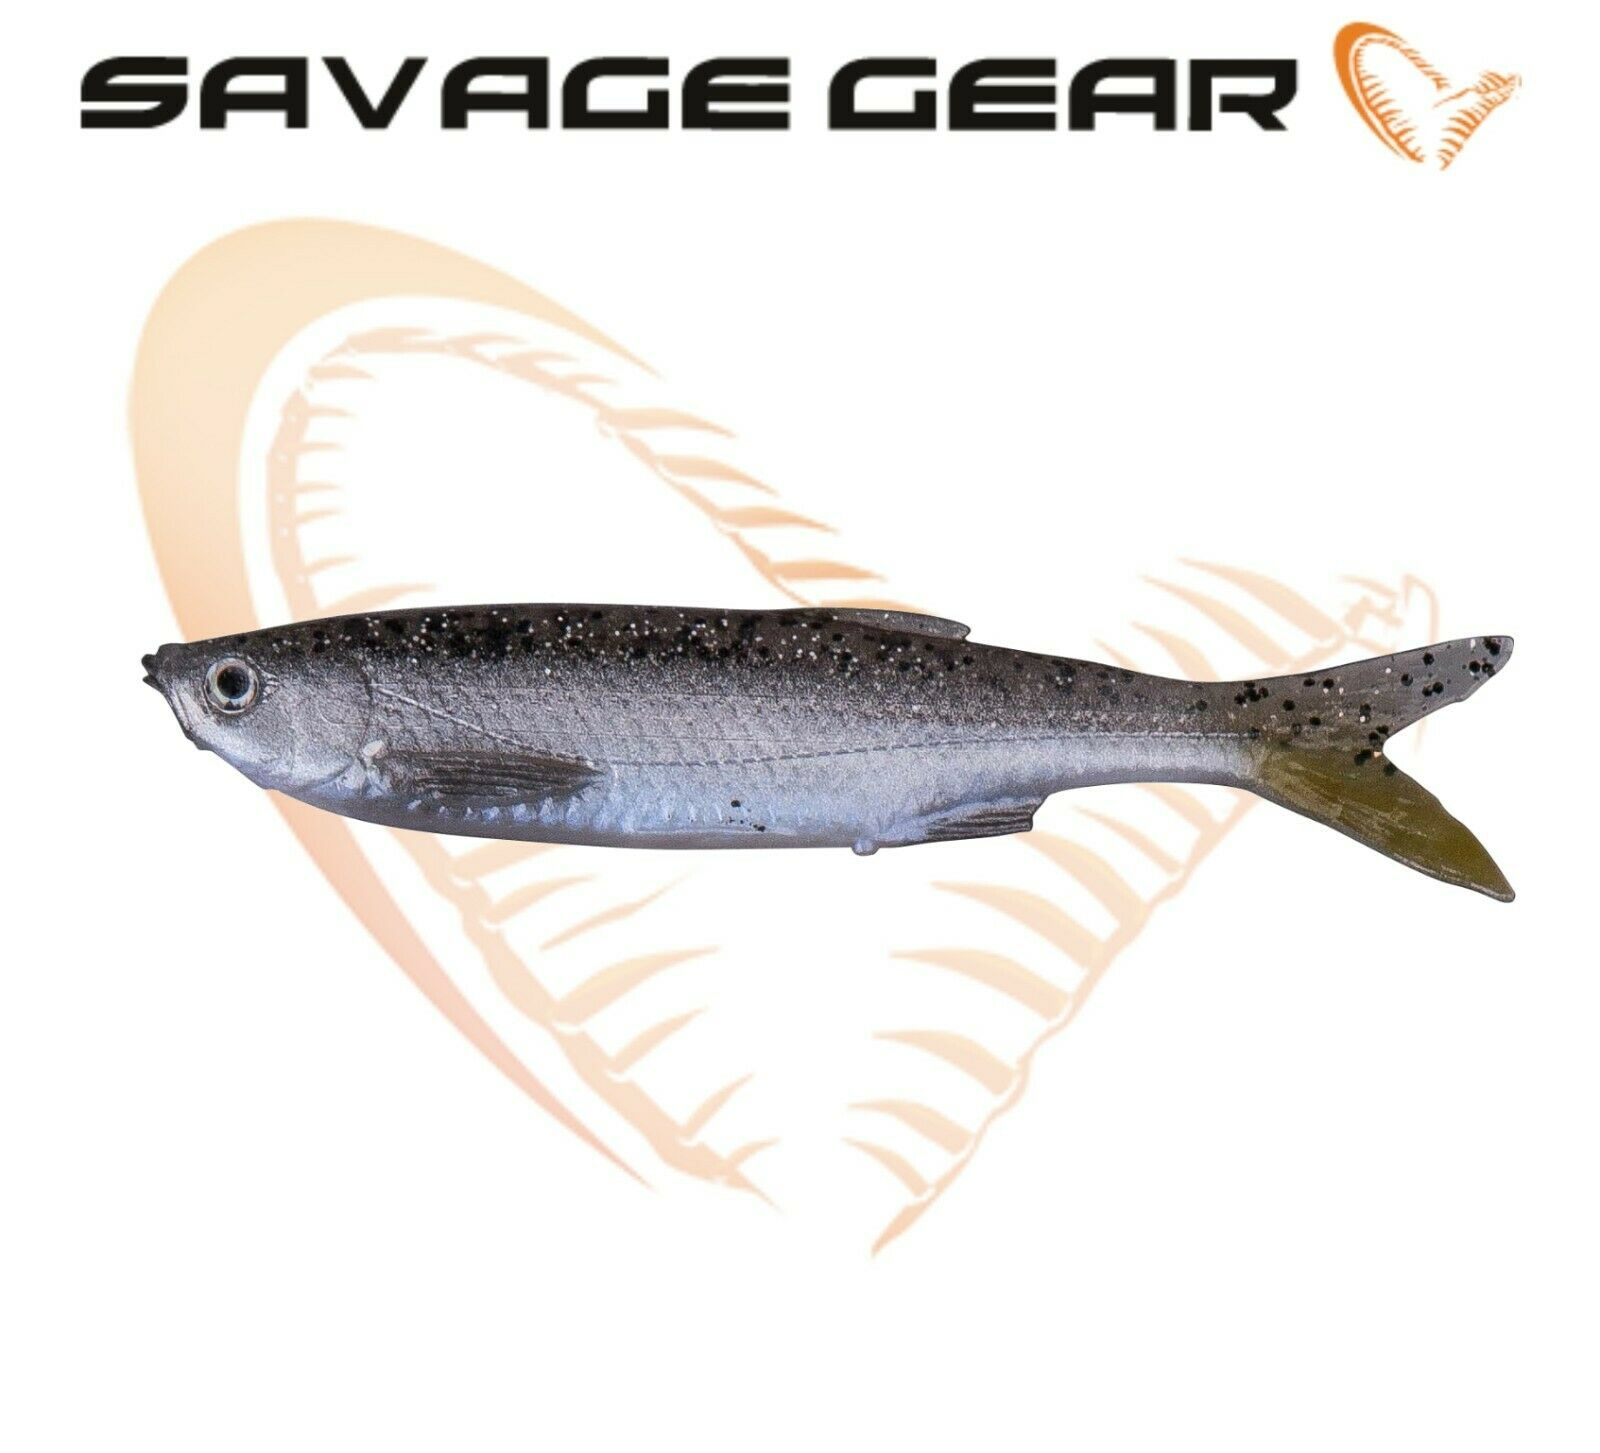 Savage Gear LB 3D Bleak Paddle Tail Bulk 10cm 8g 4 Stück Gummiköder NEU 2019